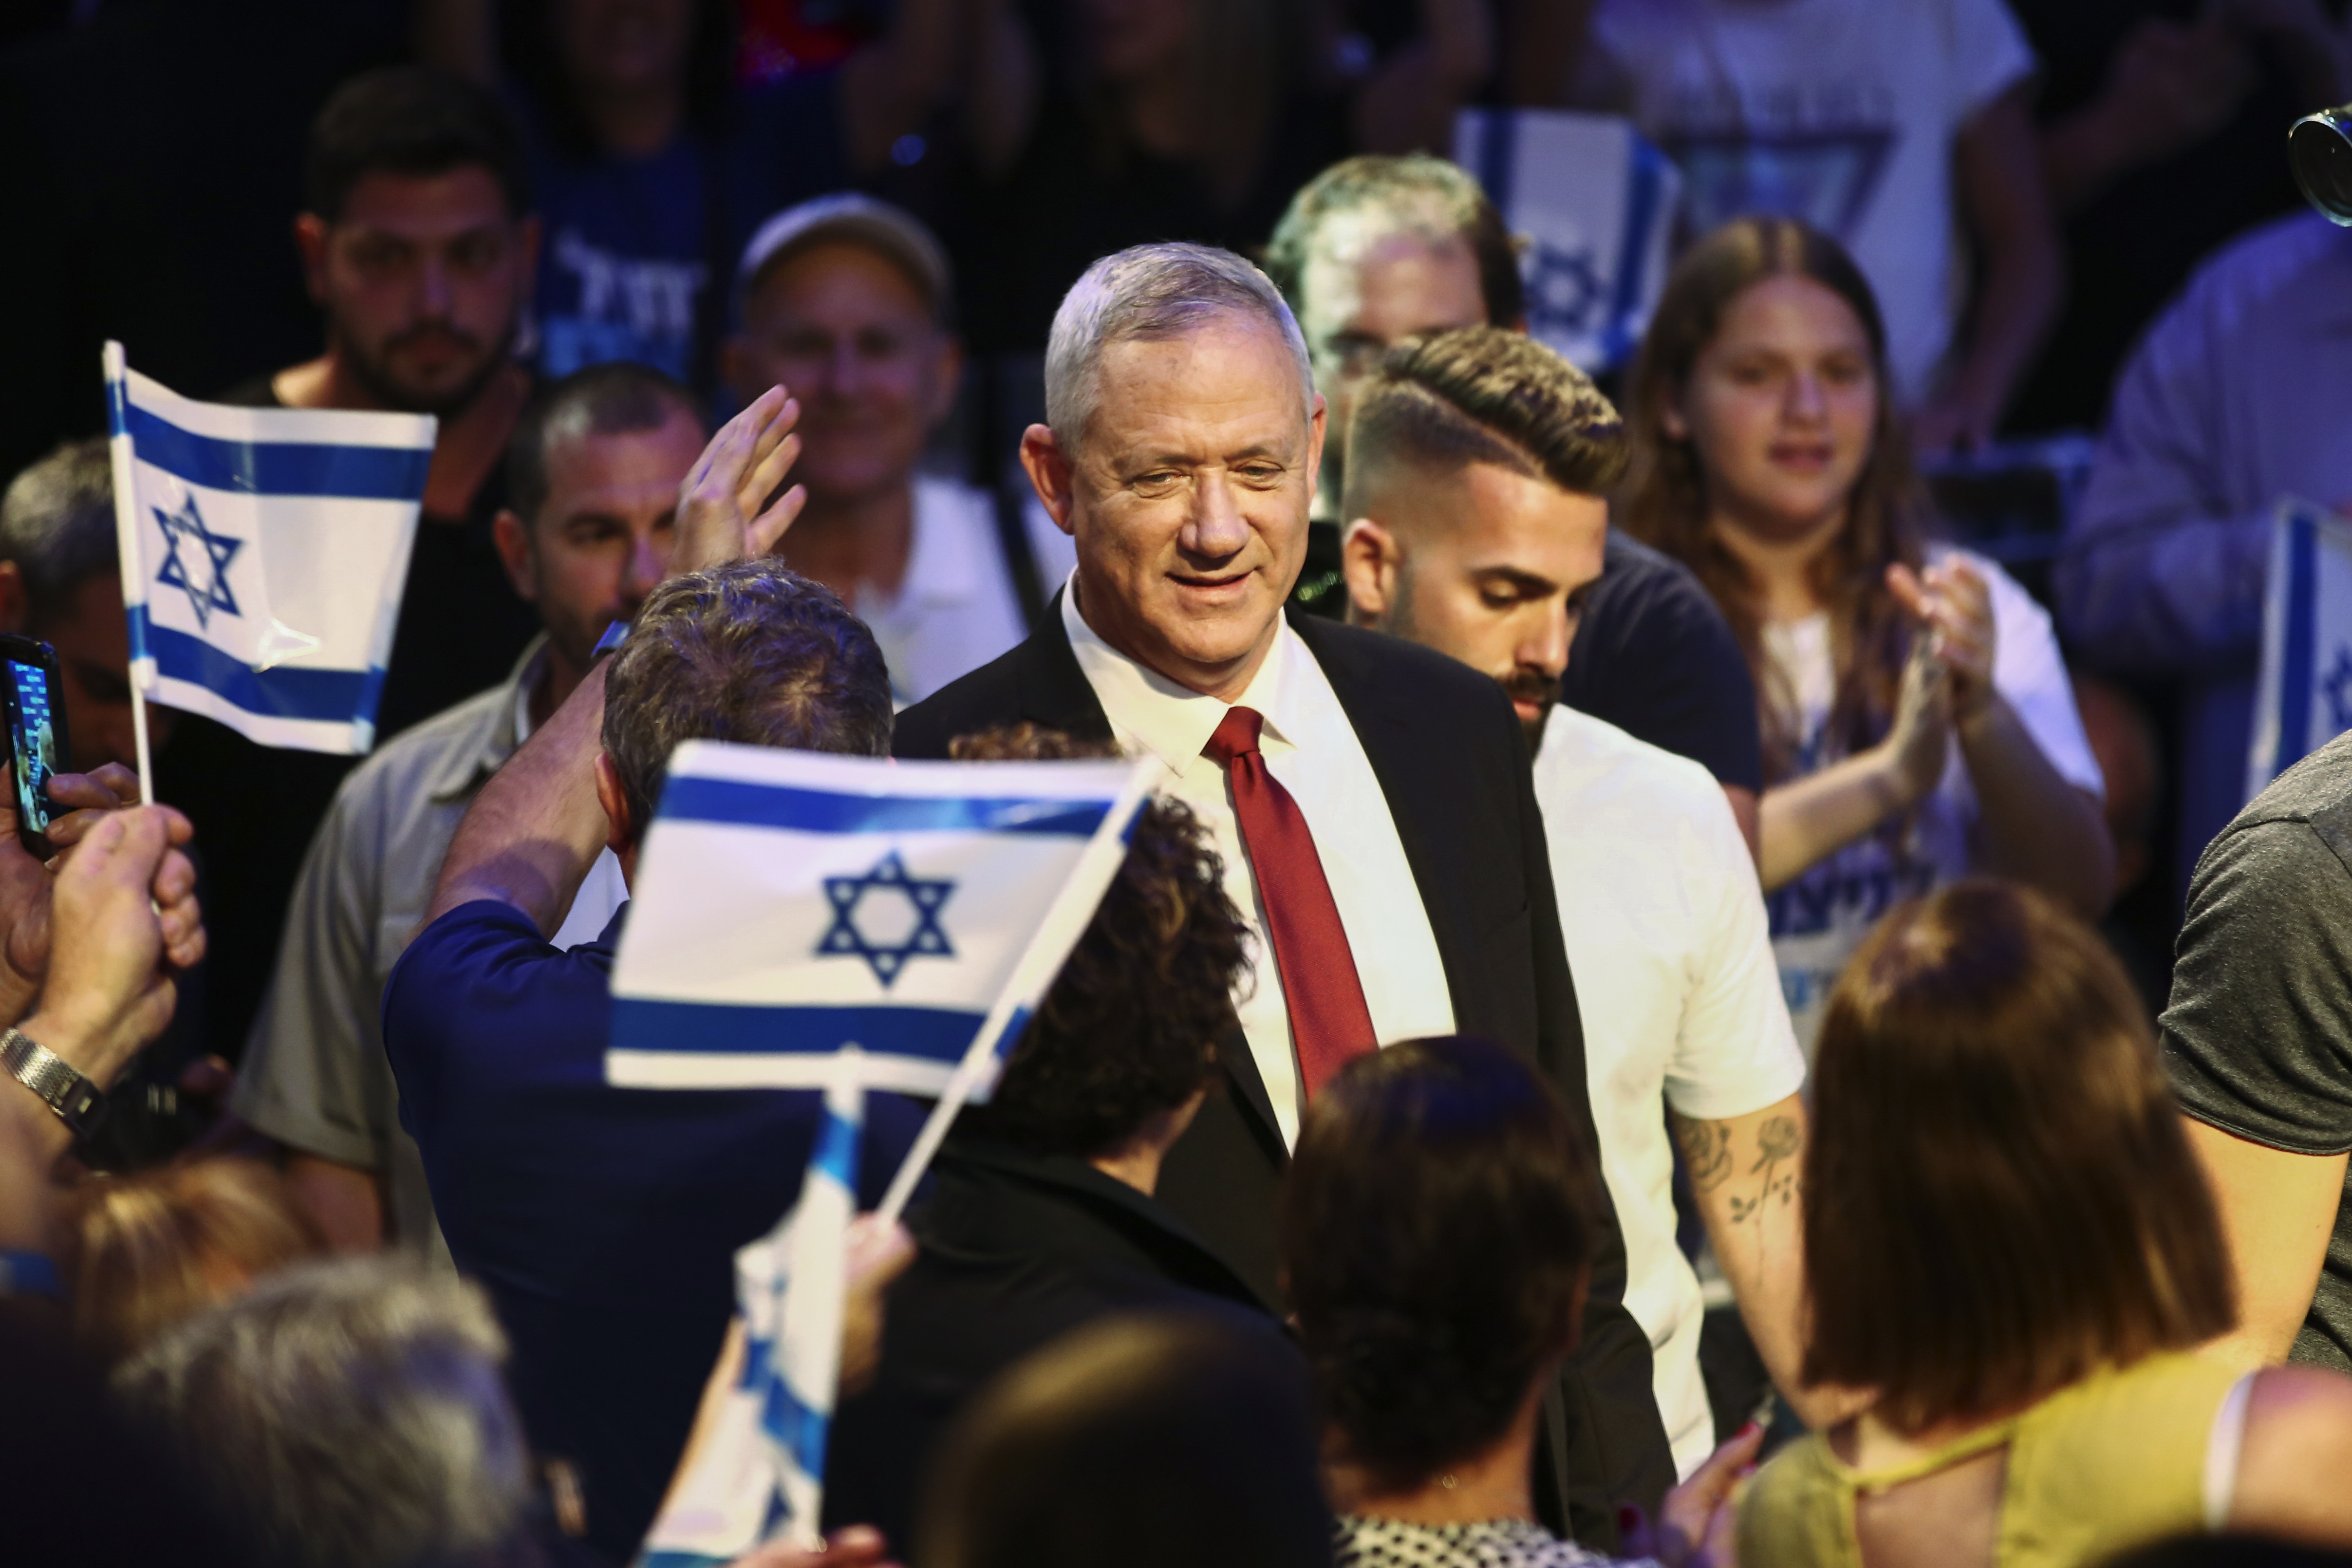 Round 2: The main parties, blocs in Israels repeat election